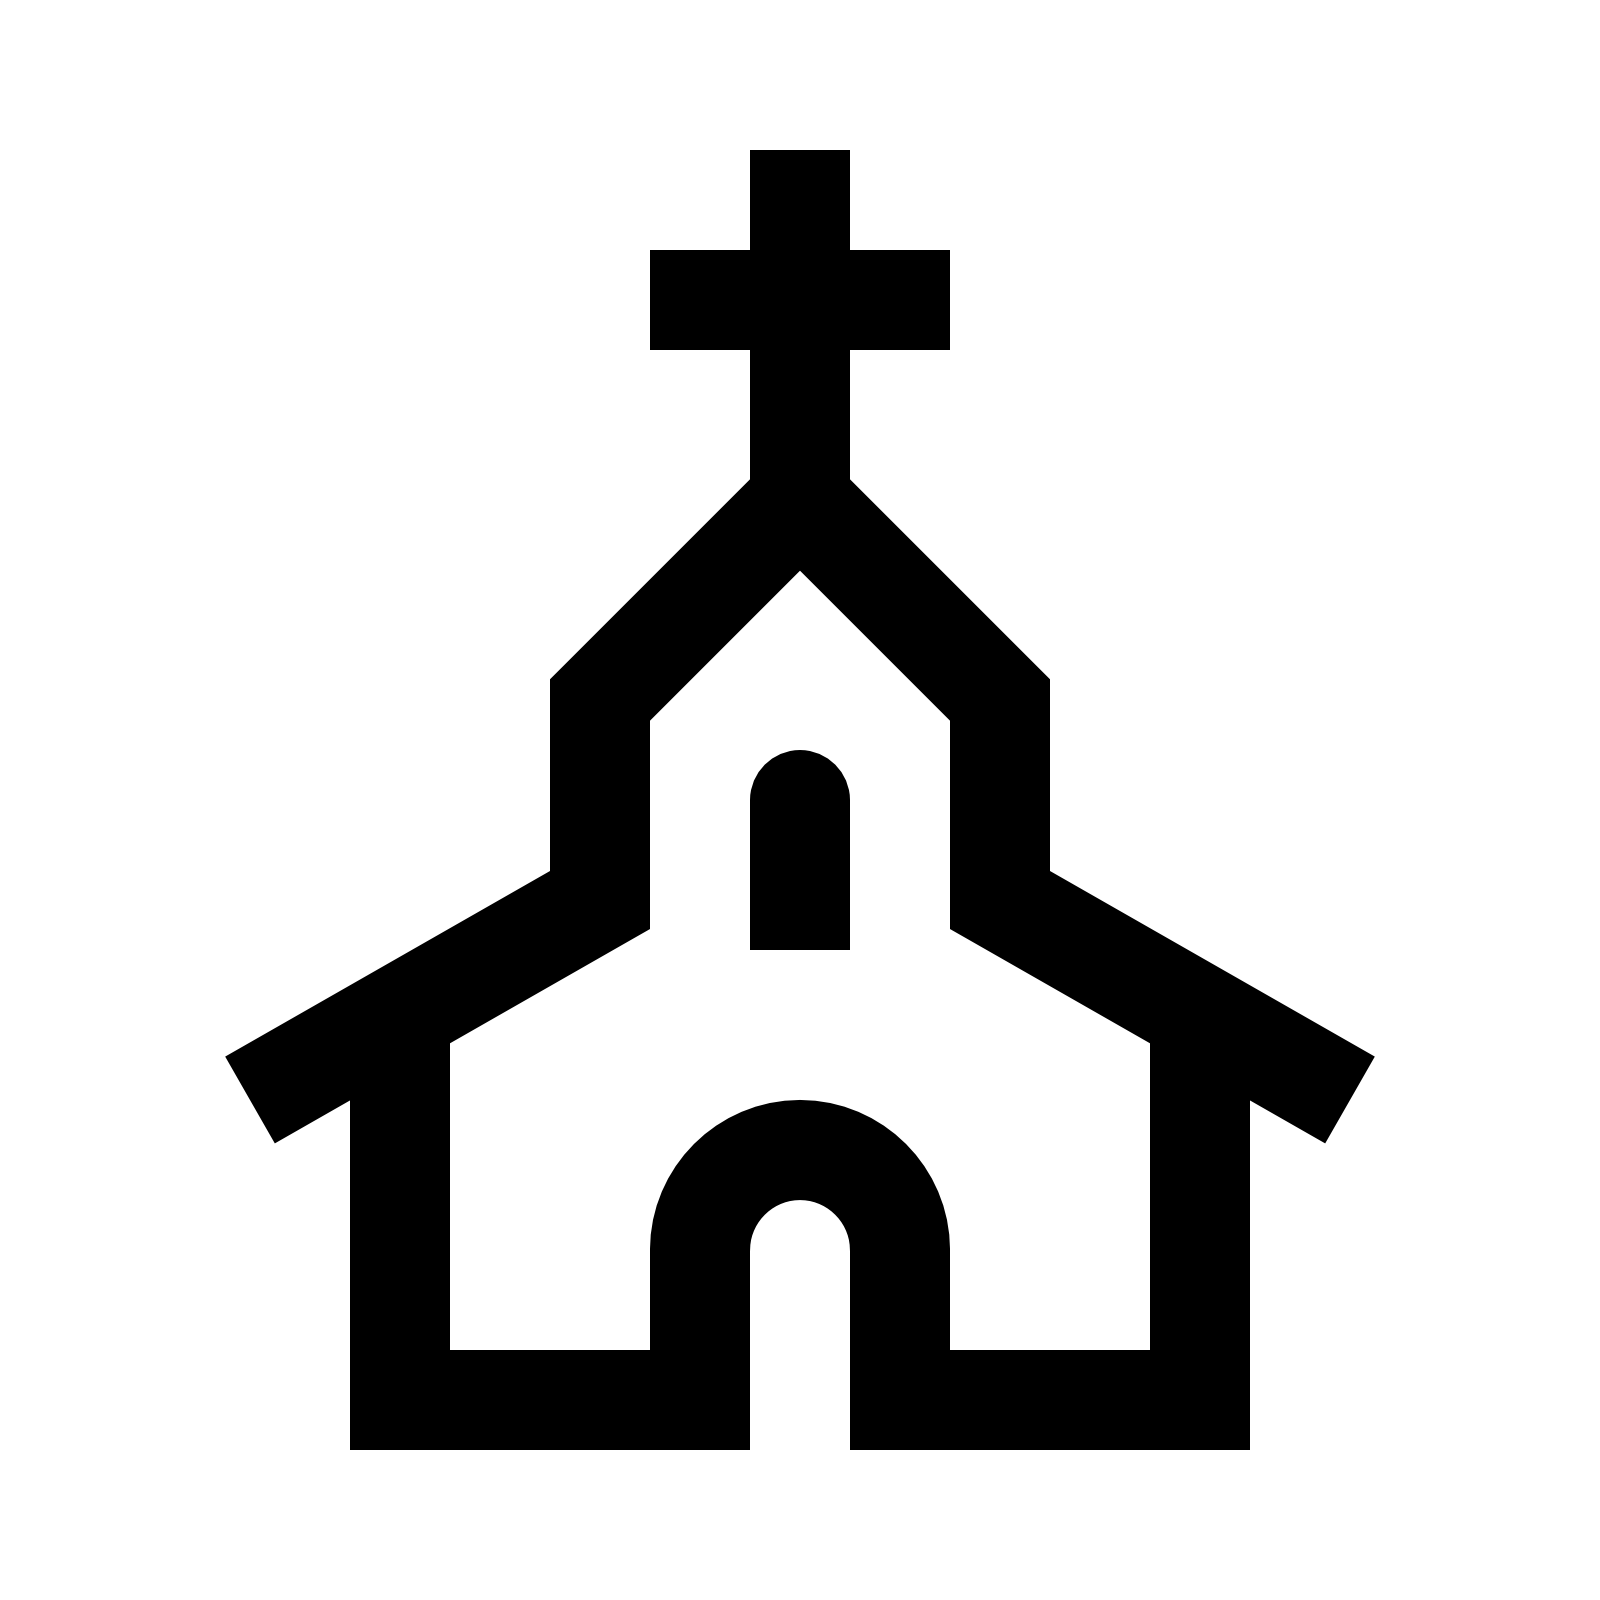 Autistic drawing realistic. Church png transparent images